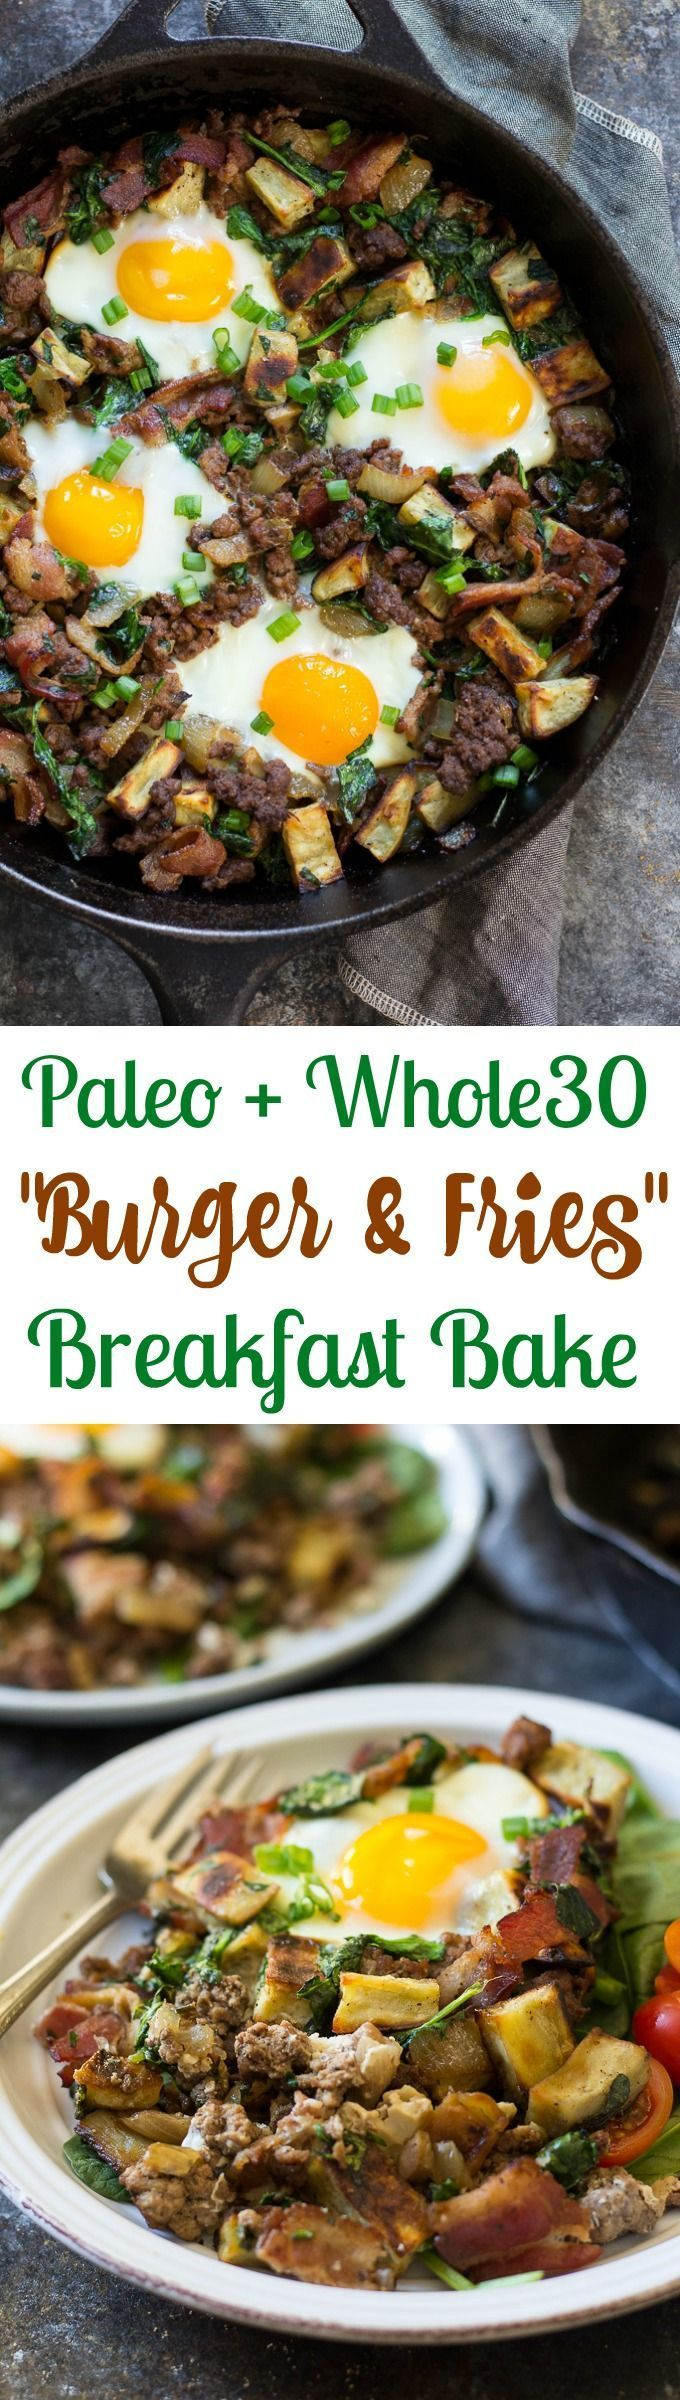 "This ""bacon burger & fries"" Paleo breakfast bake combines savory, crispy bacon, grass fed ground beef and crispy sweet potatoes with greens and baked eggs. Whole30 friendly, good for any meal, gluten free, dairy free."